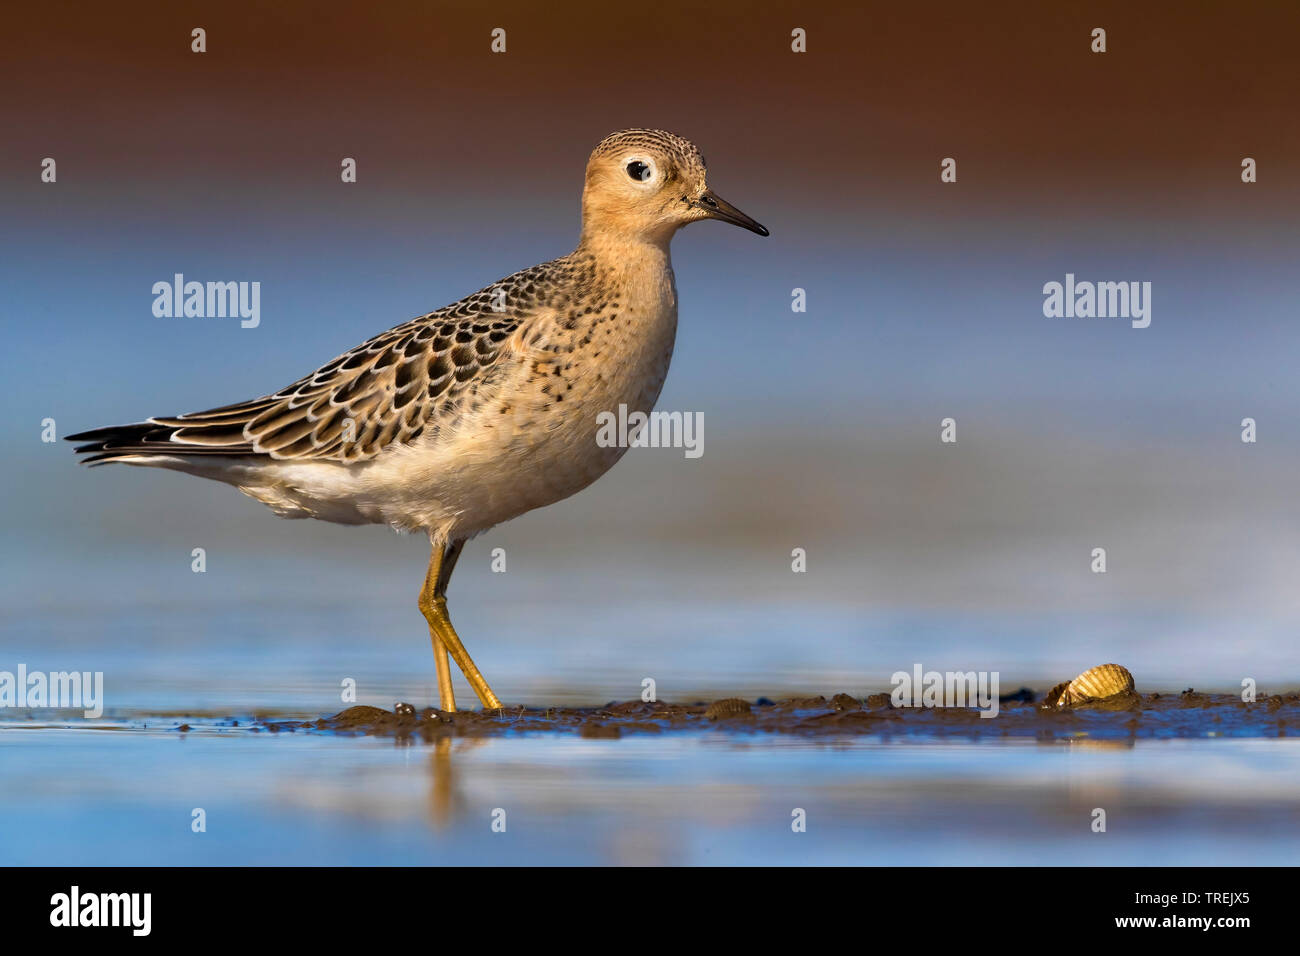 Graslaeufer (Tryngites subruficollis), steht im Flachwasser, Italien | buff-breasted sandpiper (Tryngites subruficollis), standing in shallow water, I - Stock Image